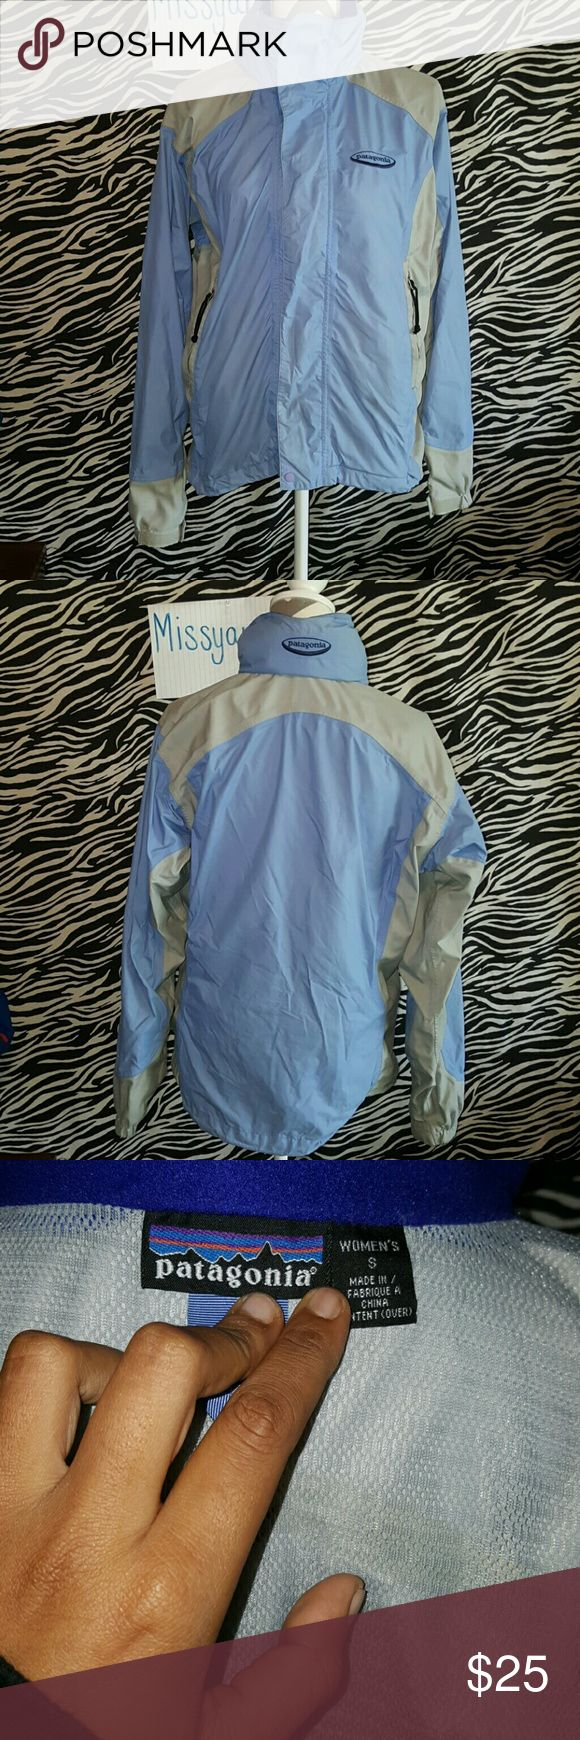 Patagonia jacket Womens size small. Does need to be washed otherwise no rips or holes I can see. Price reflects my lack of washing prior to sale Patagonia Jackets & Coats